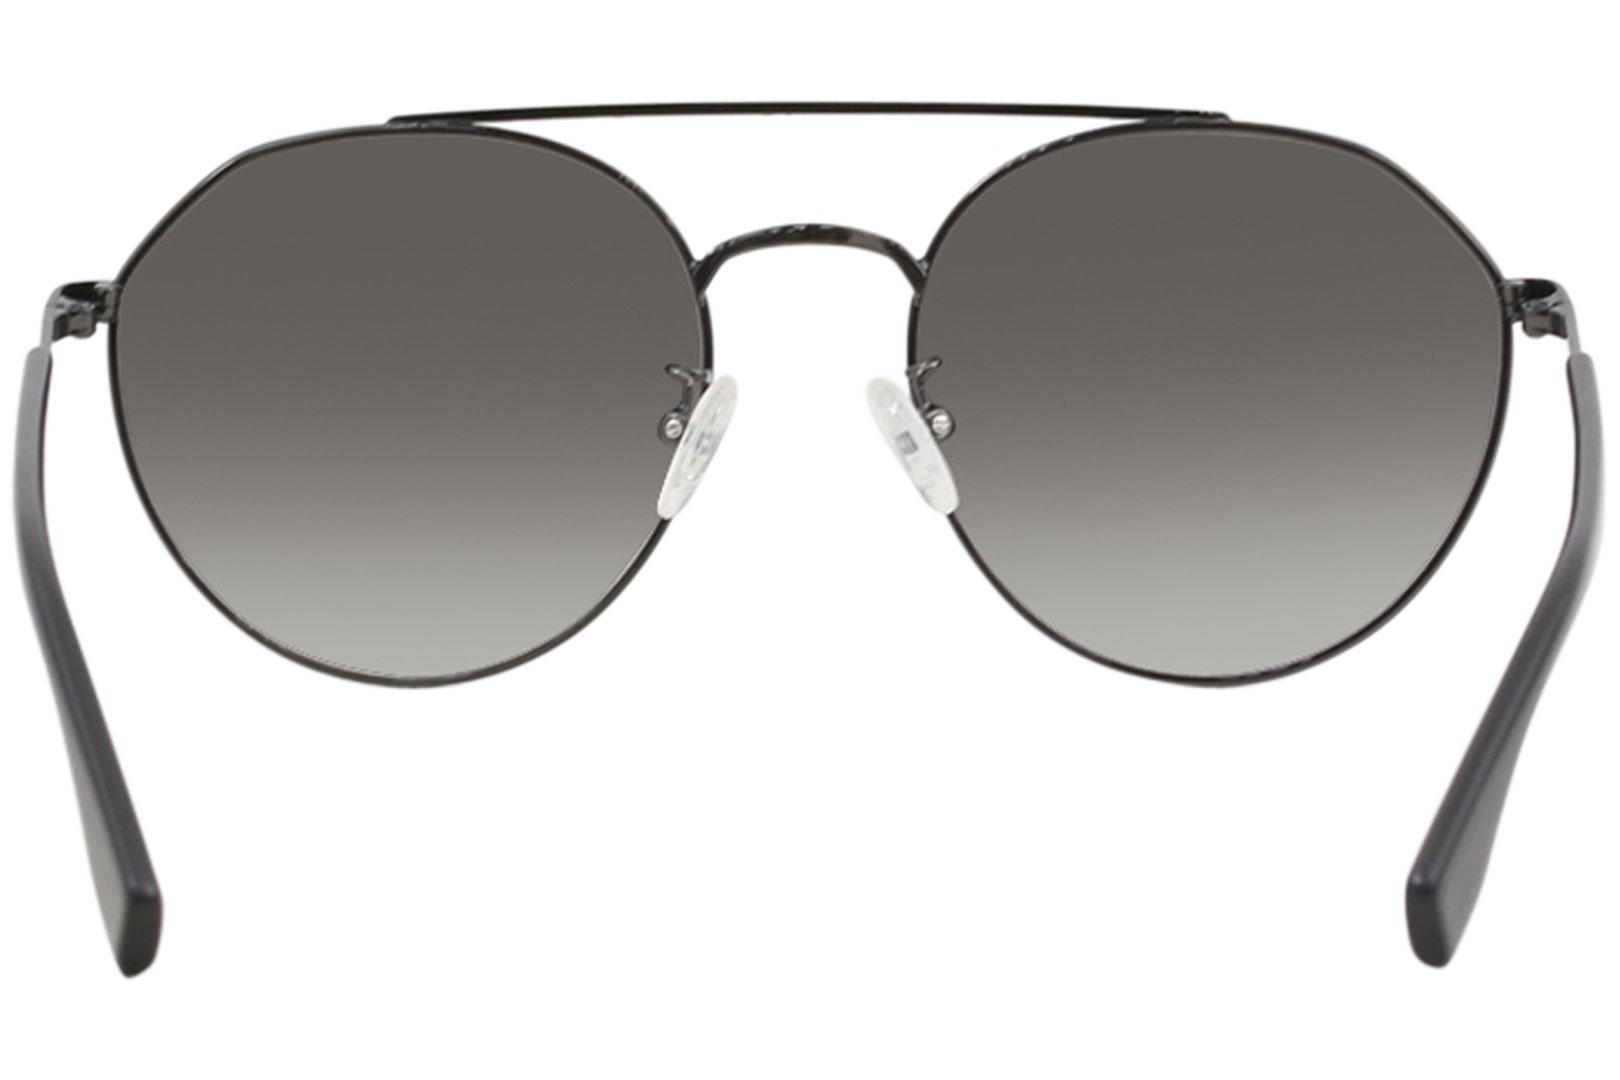 fc37aabf54f Converse Women s SCO053 SCO 053 Fashion Pilot Sunglasses by Converse. Touch  to zoom